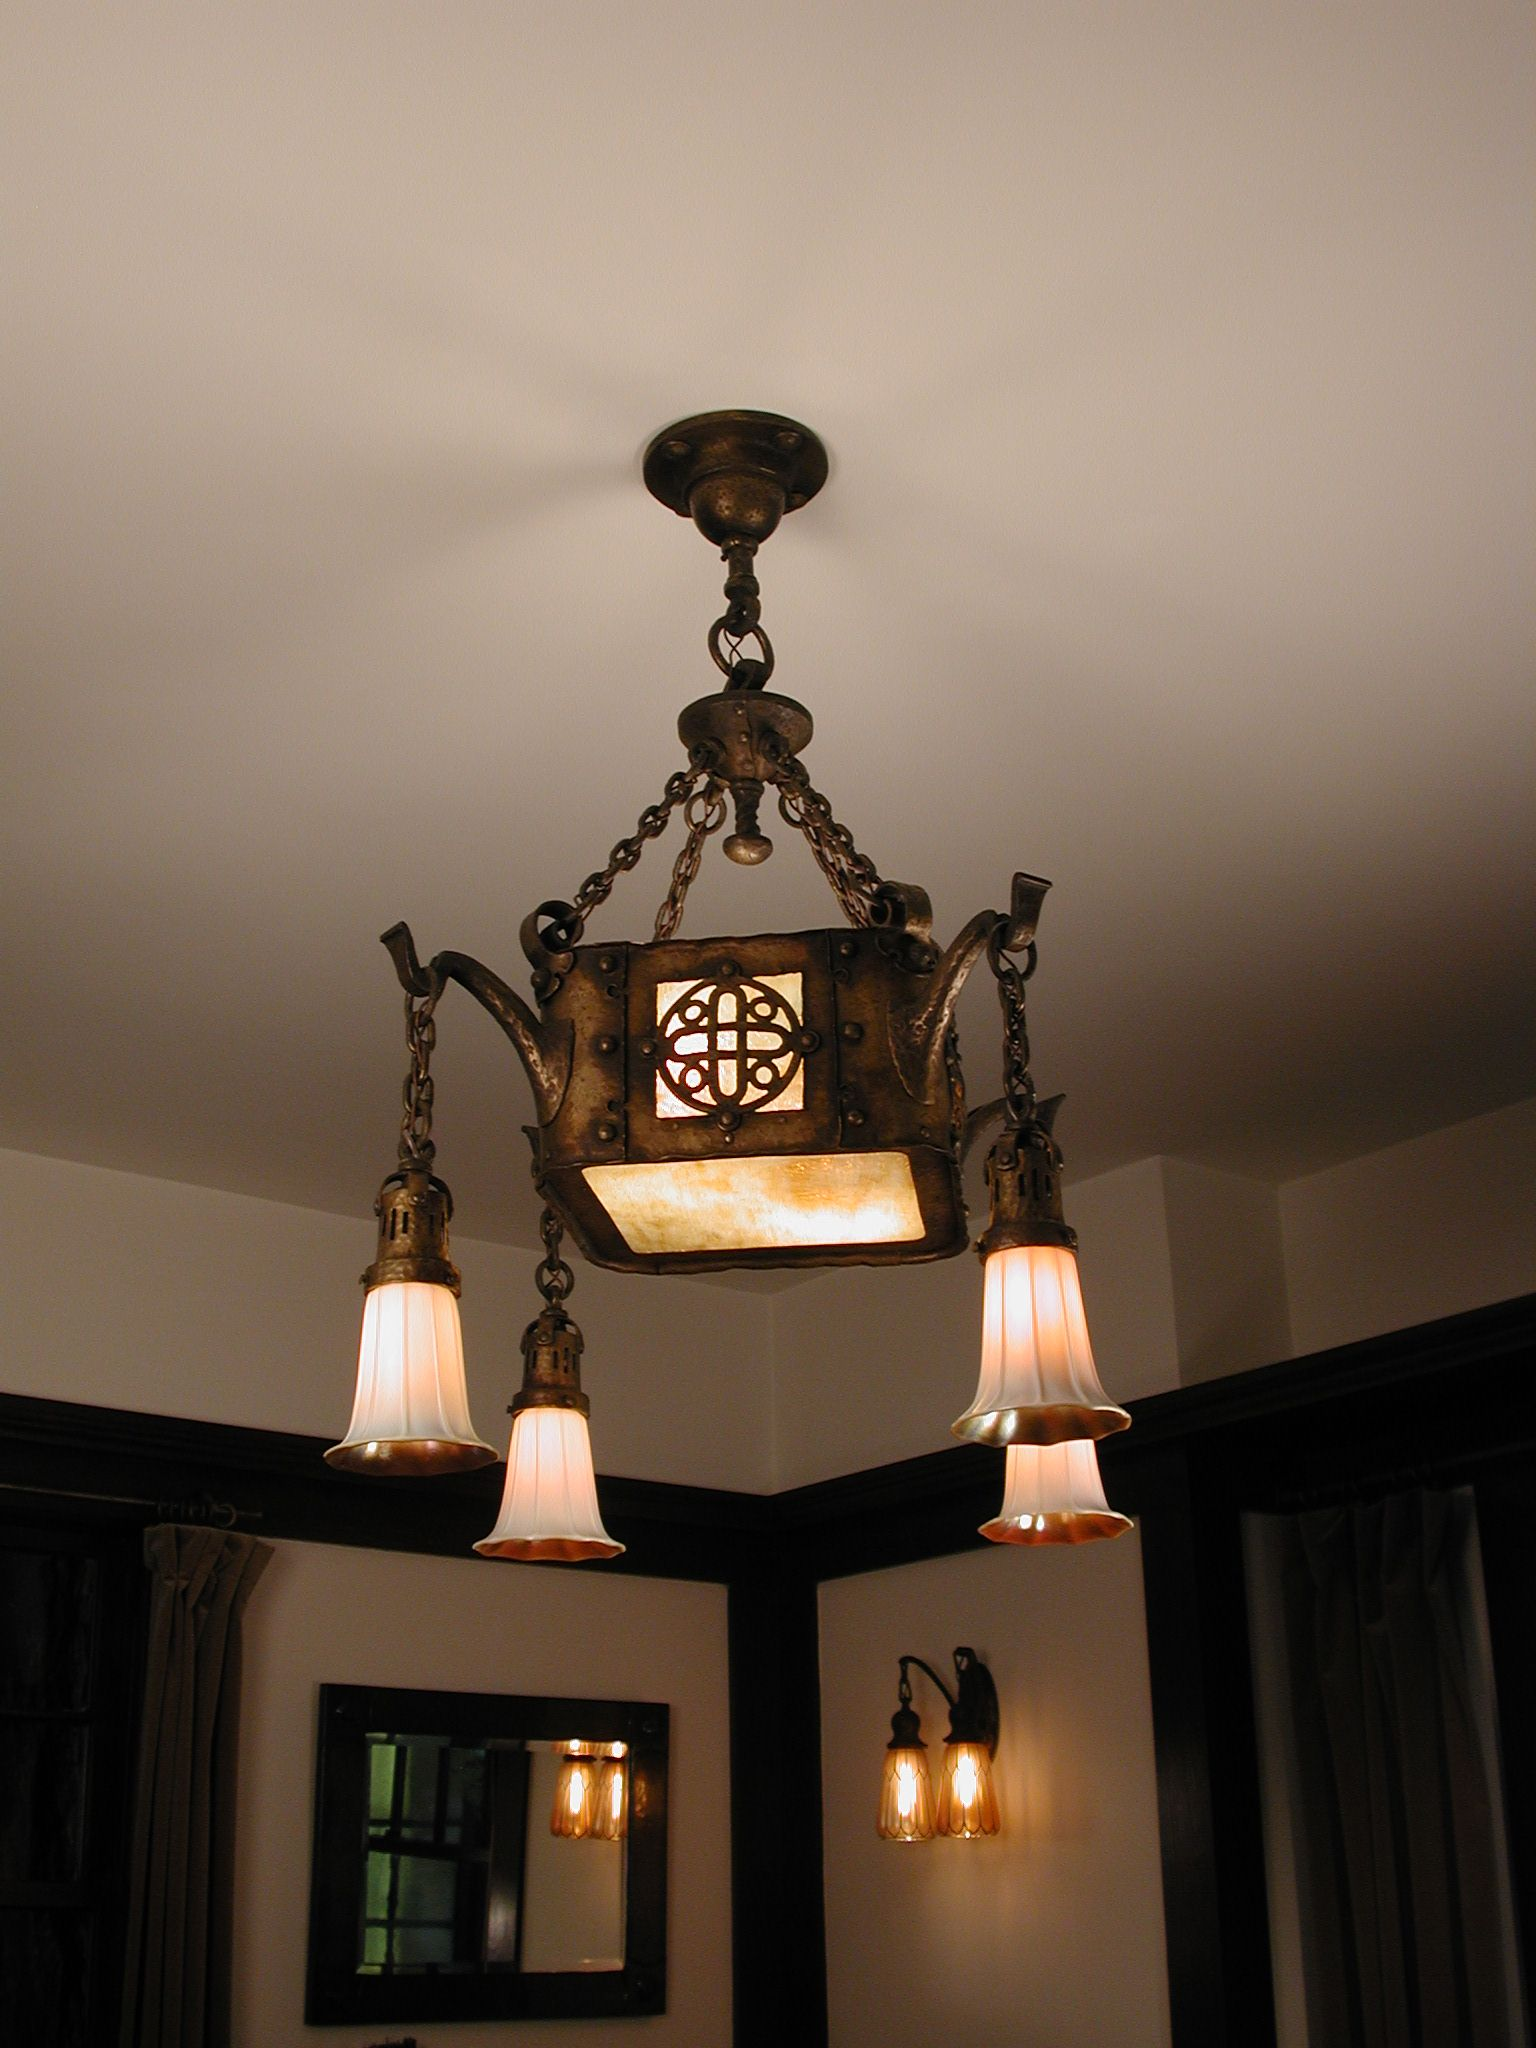 Wonderful Craftsman Fixture With Stuben Shades Shades On Wall Sconces Are Iridile From Mcbeth Evan Craftsman Lamps Mission Style Lighting Art Nouveau Lamps